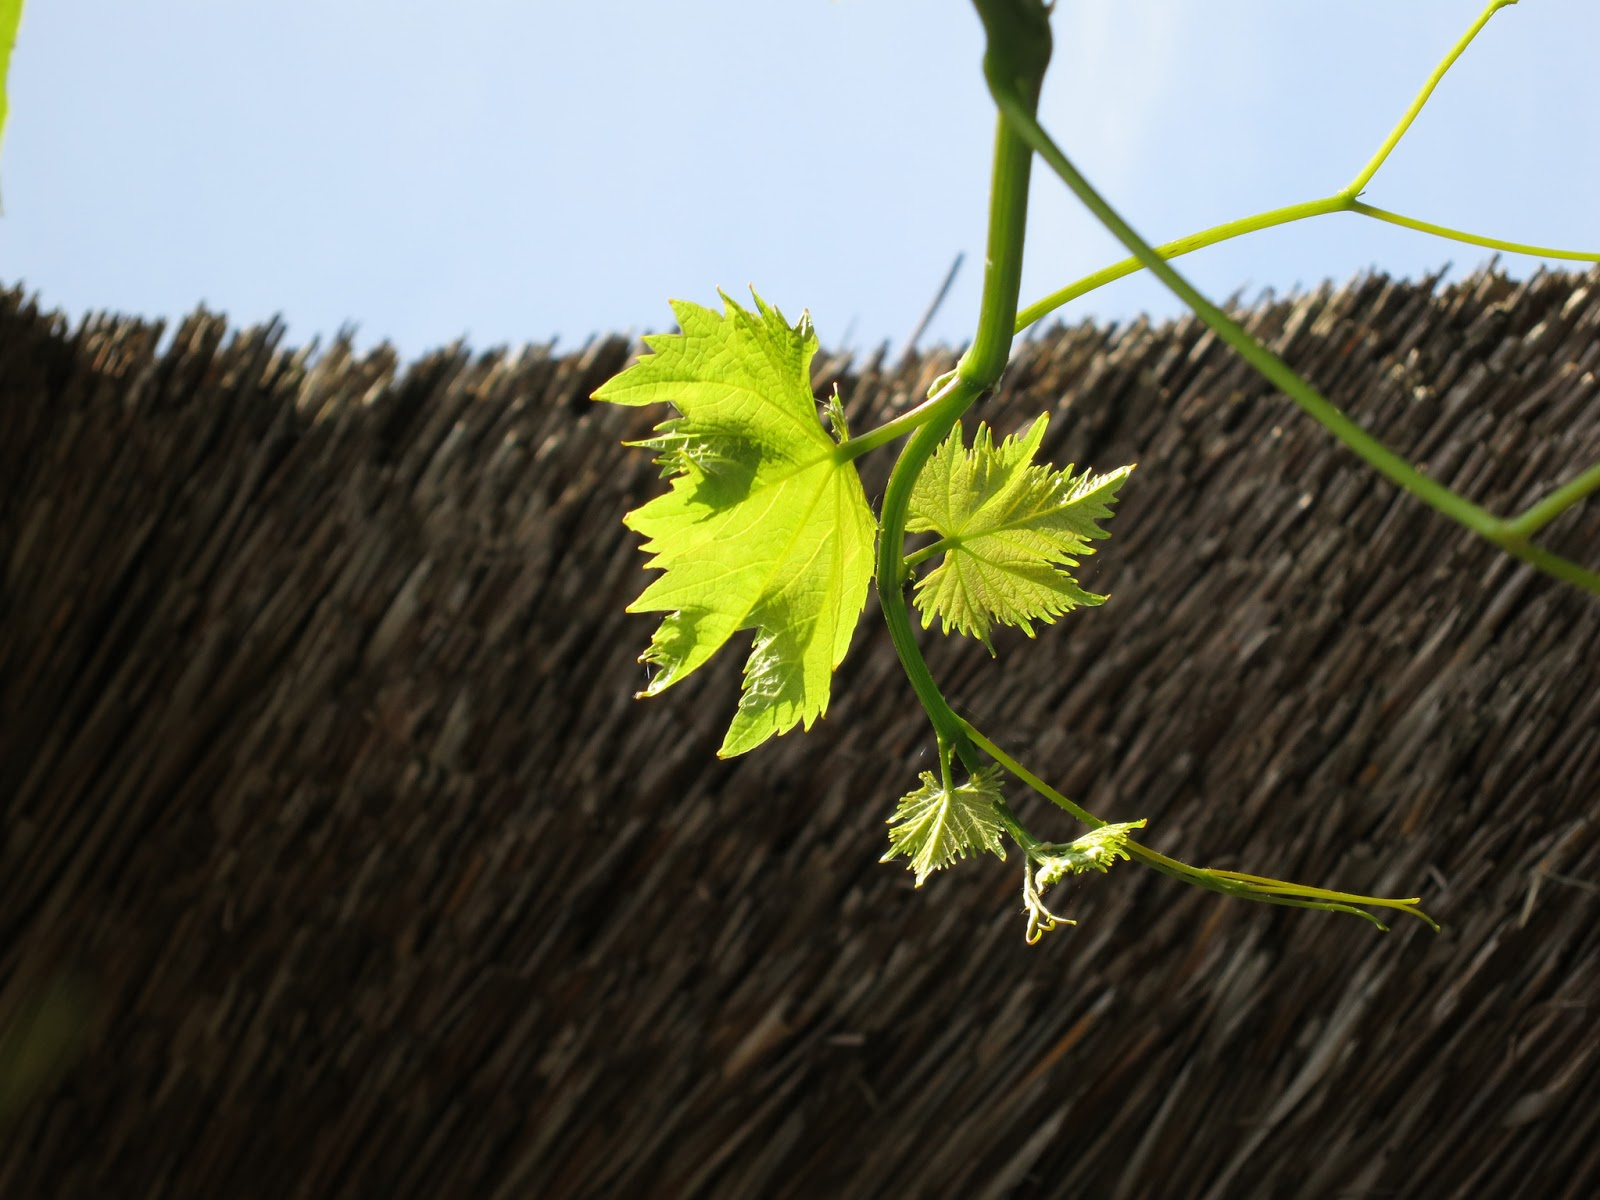 Young vine leaves below thatched roof.